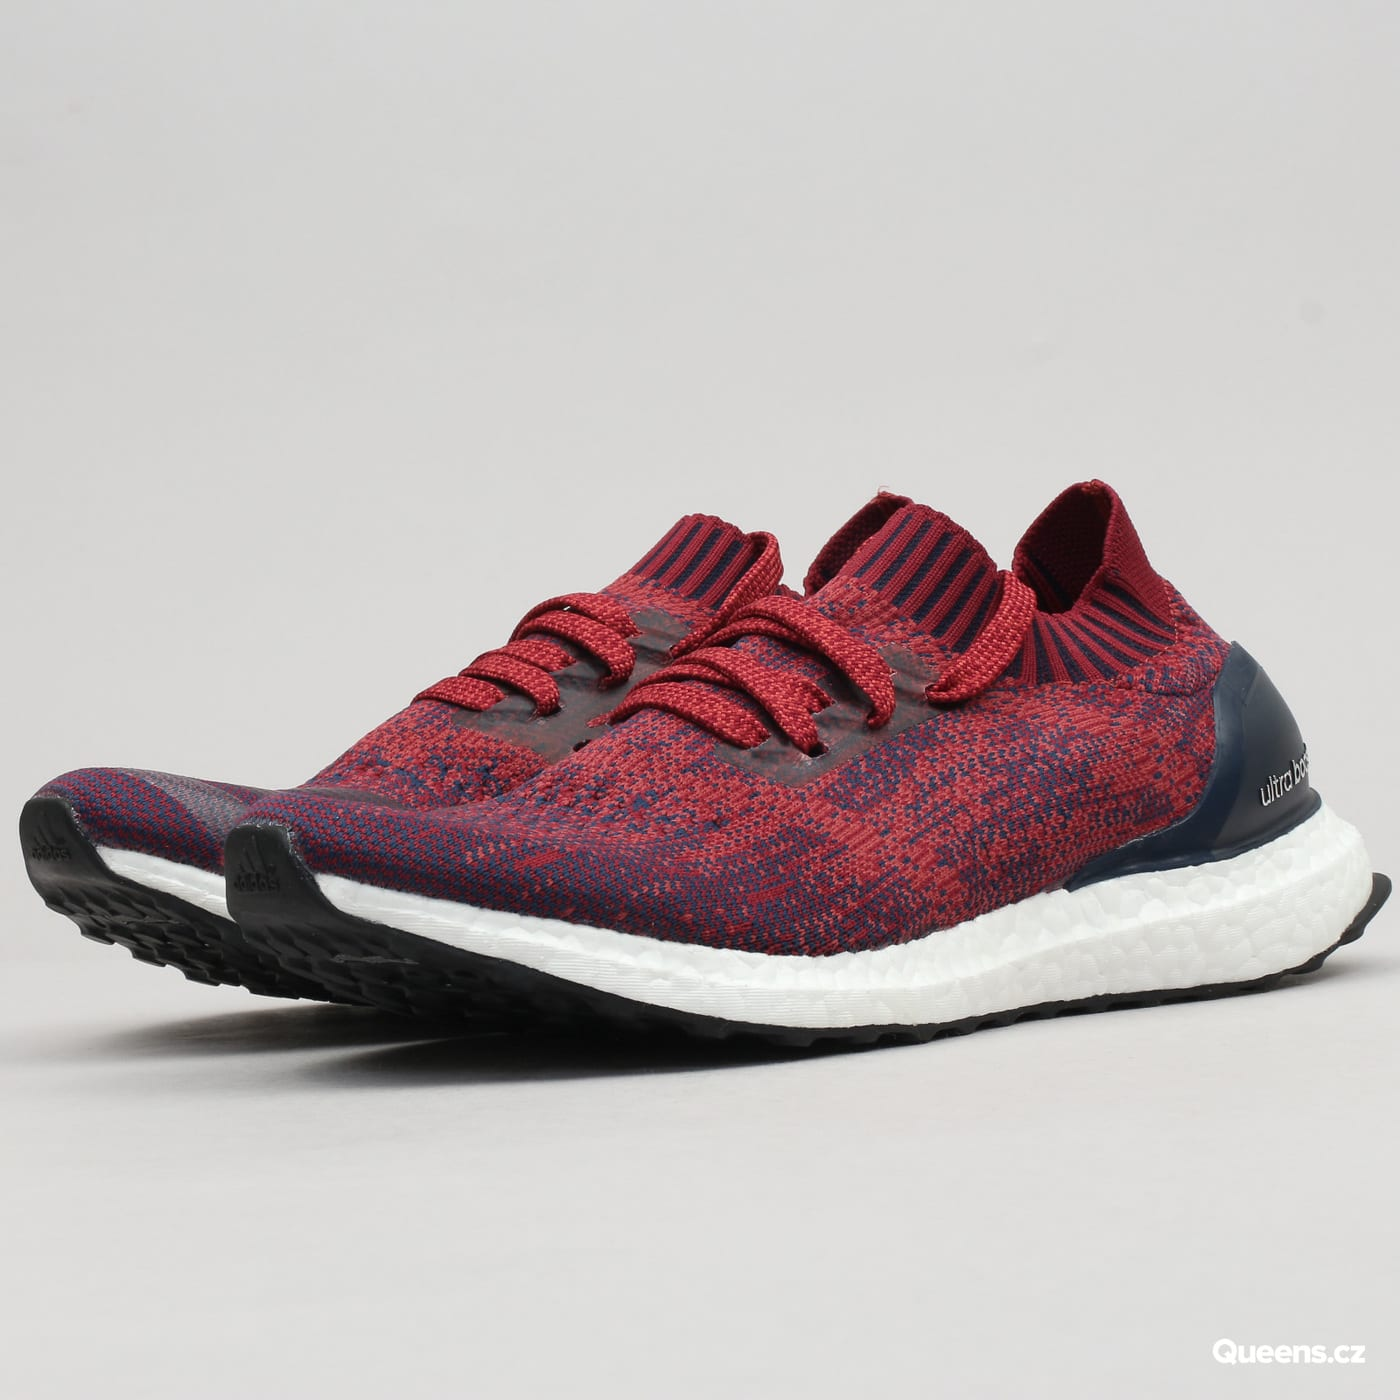 adidas UltraBoost Uncaged mystery red / colburgundy / colnavy